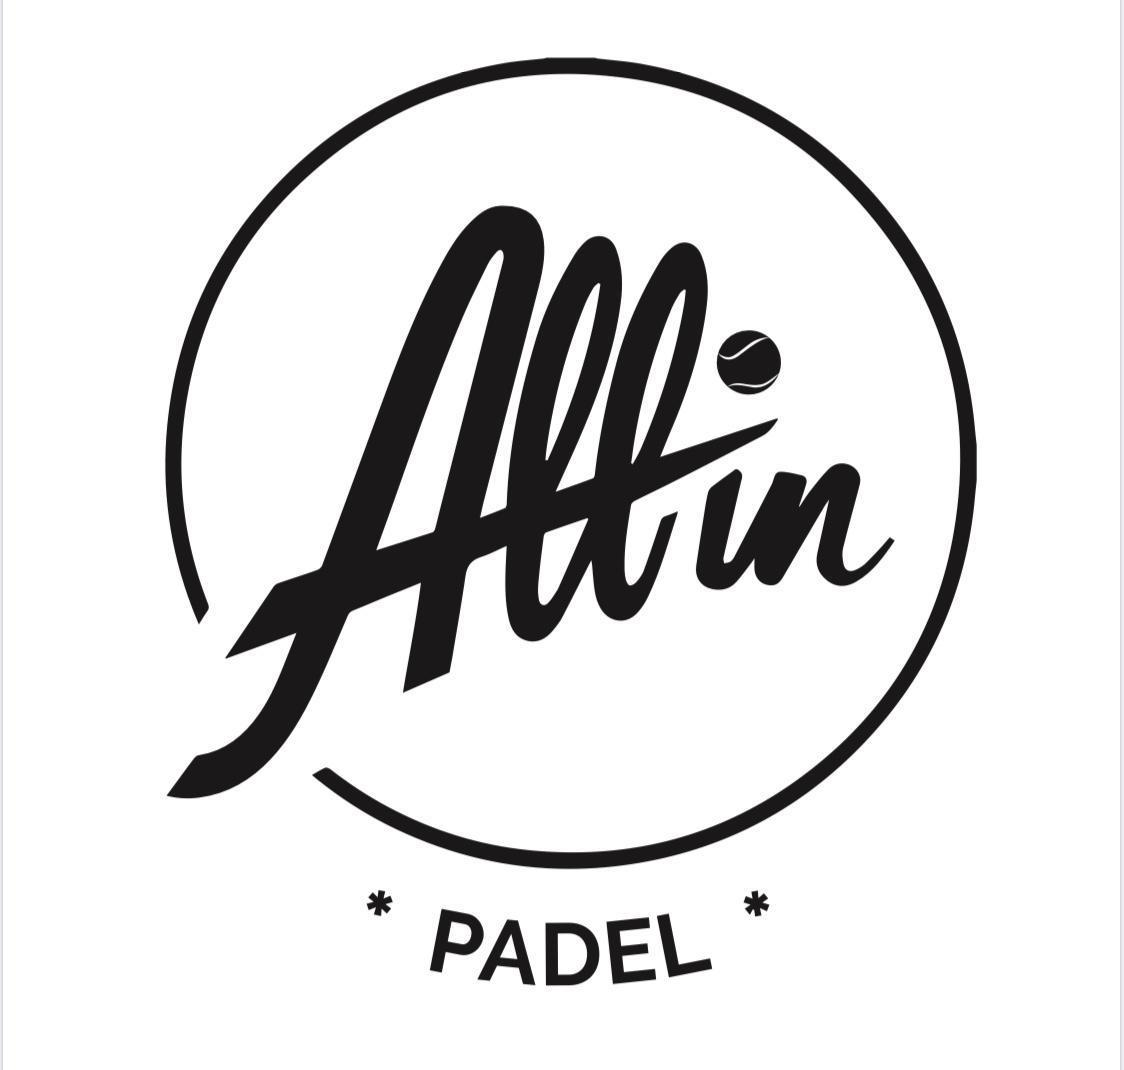 Ofertas de emprego: All In Padel recrutas